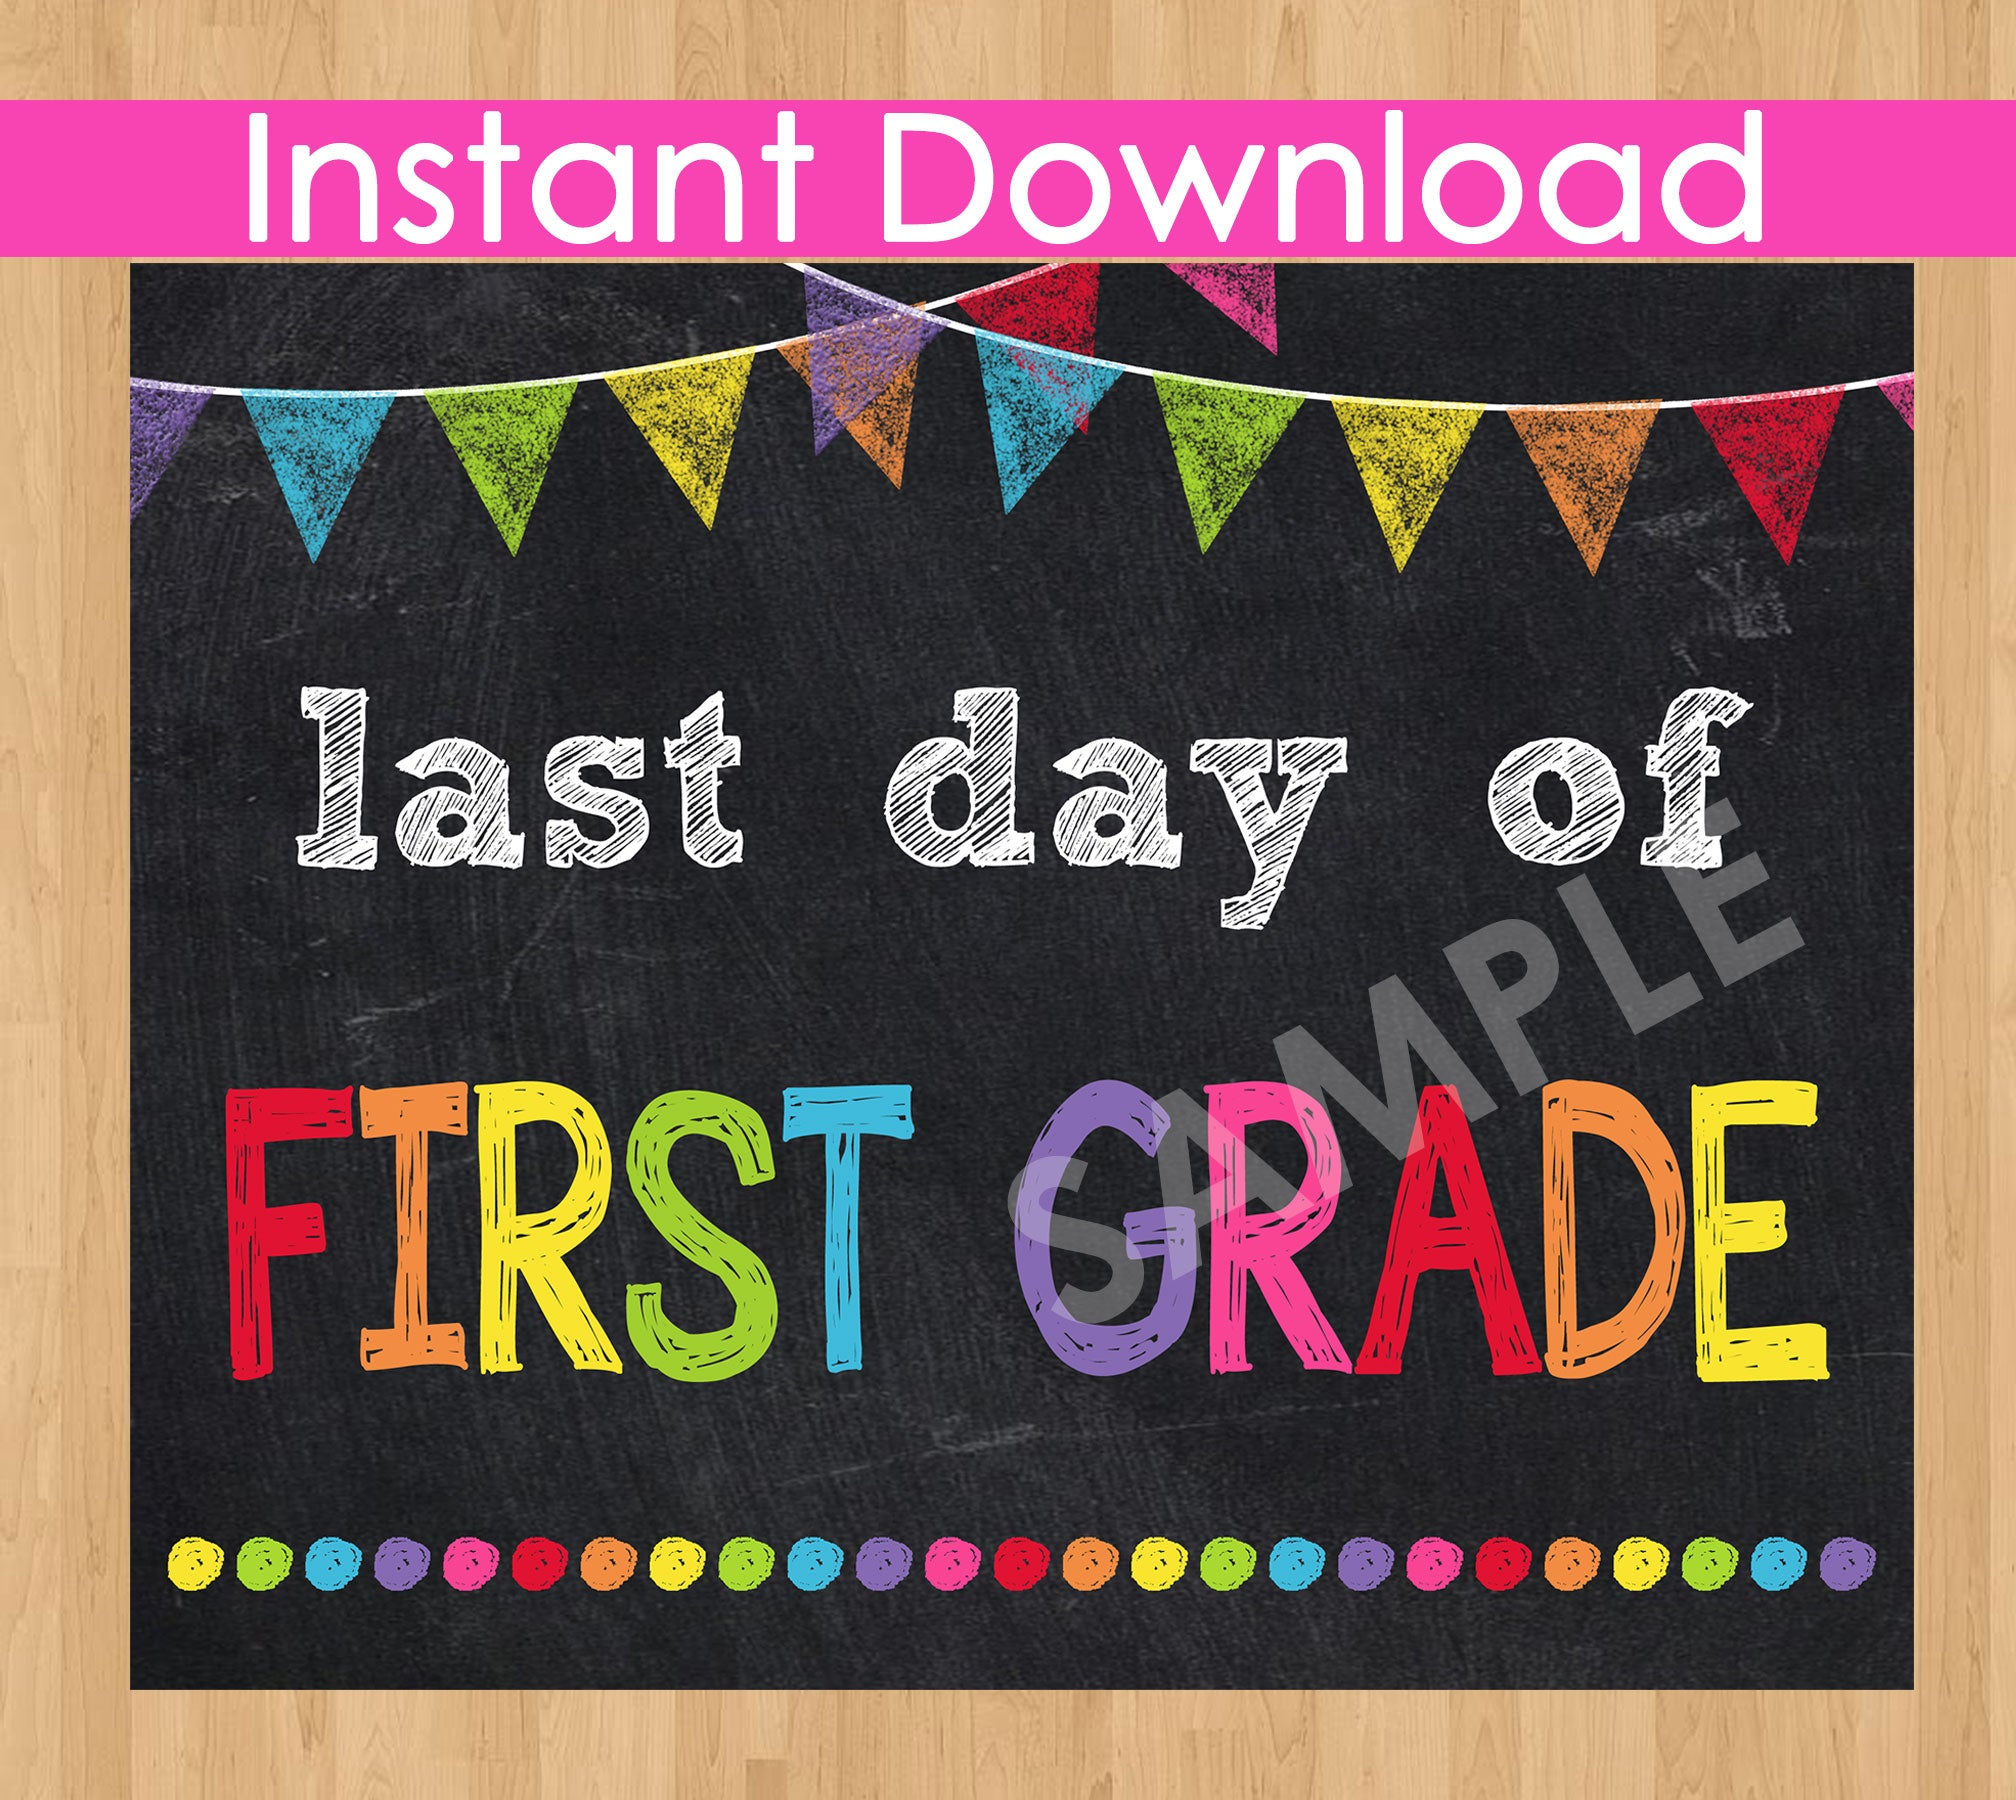 Last Day of First Grade INSTANT DOWNLOAD, Last Day of School Chalkboard Sign Printable Photo Prop, Last Day of Preschool Graduation 8x10 jpg